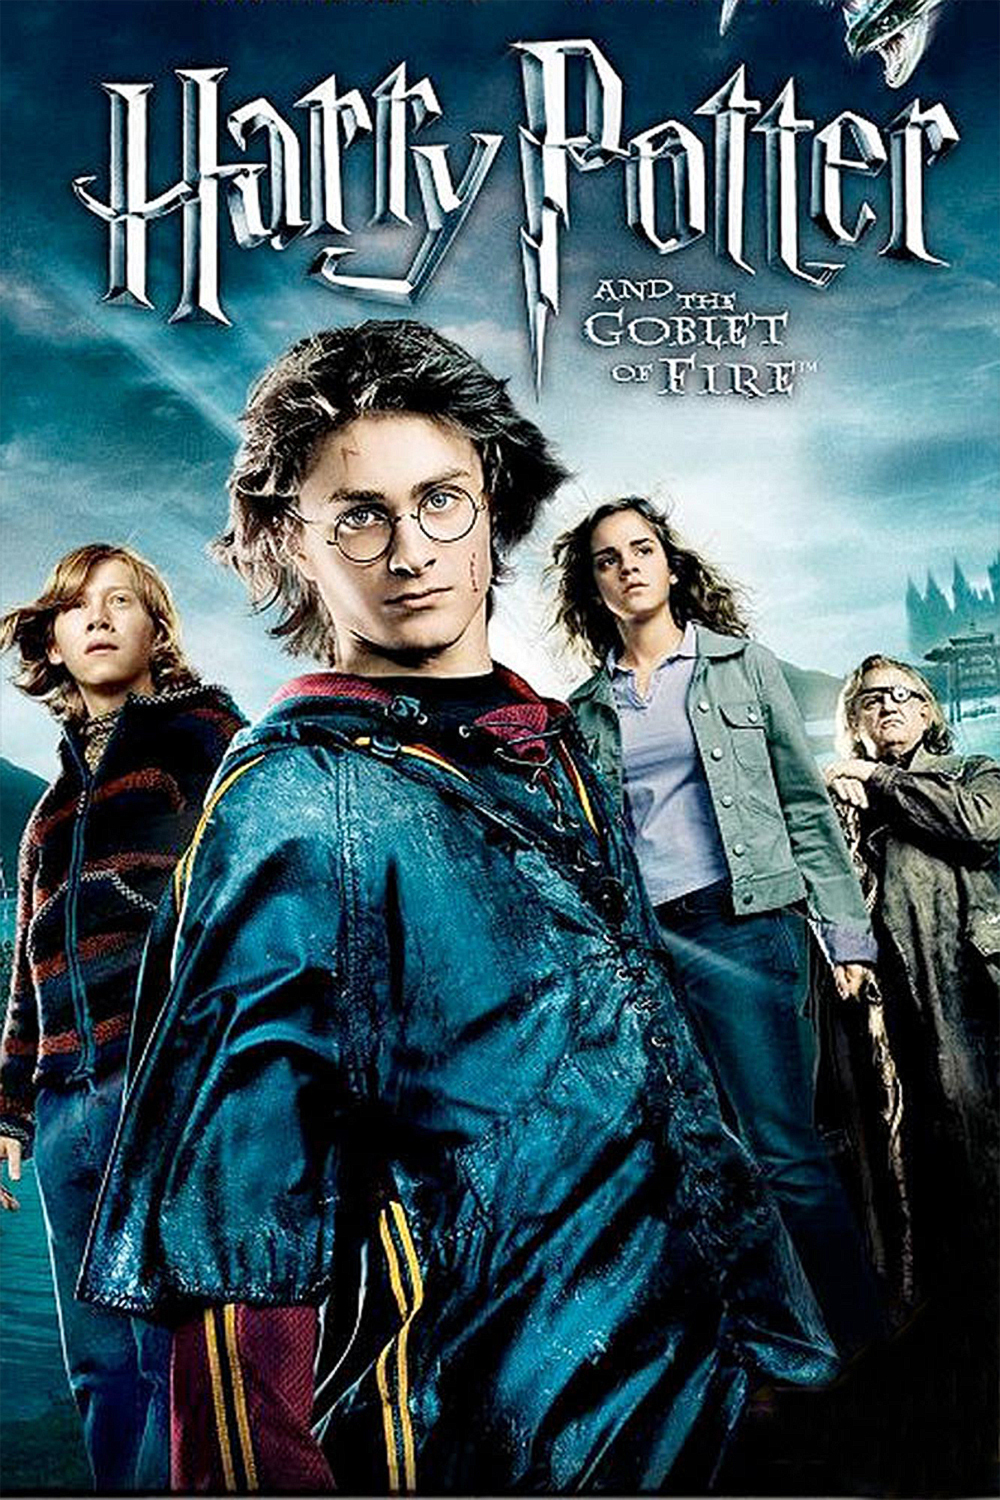 Societa Di Archeologia E Cimeli Harry Potter And The Goblet Of Fire In the movie, dumbledore introduces karkaroff and the durmstrang students as his friends from the north (bulgaria is far to the south of scotland). societa di archeologia e cimeli blogger